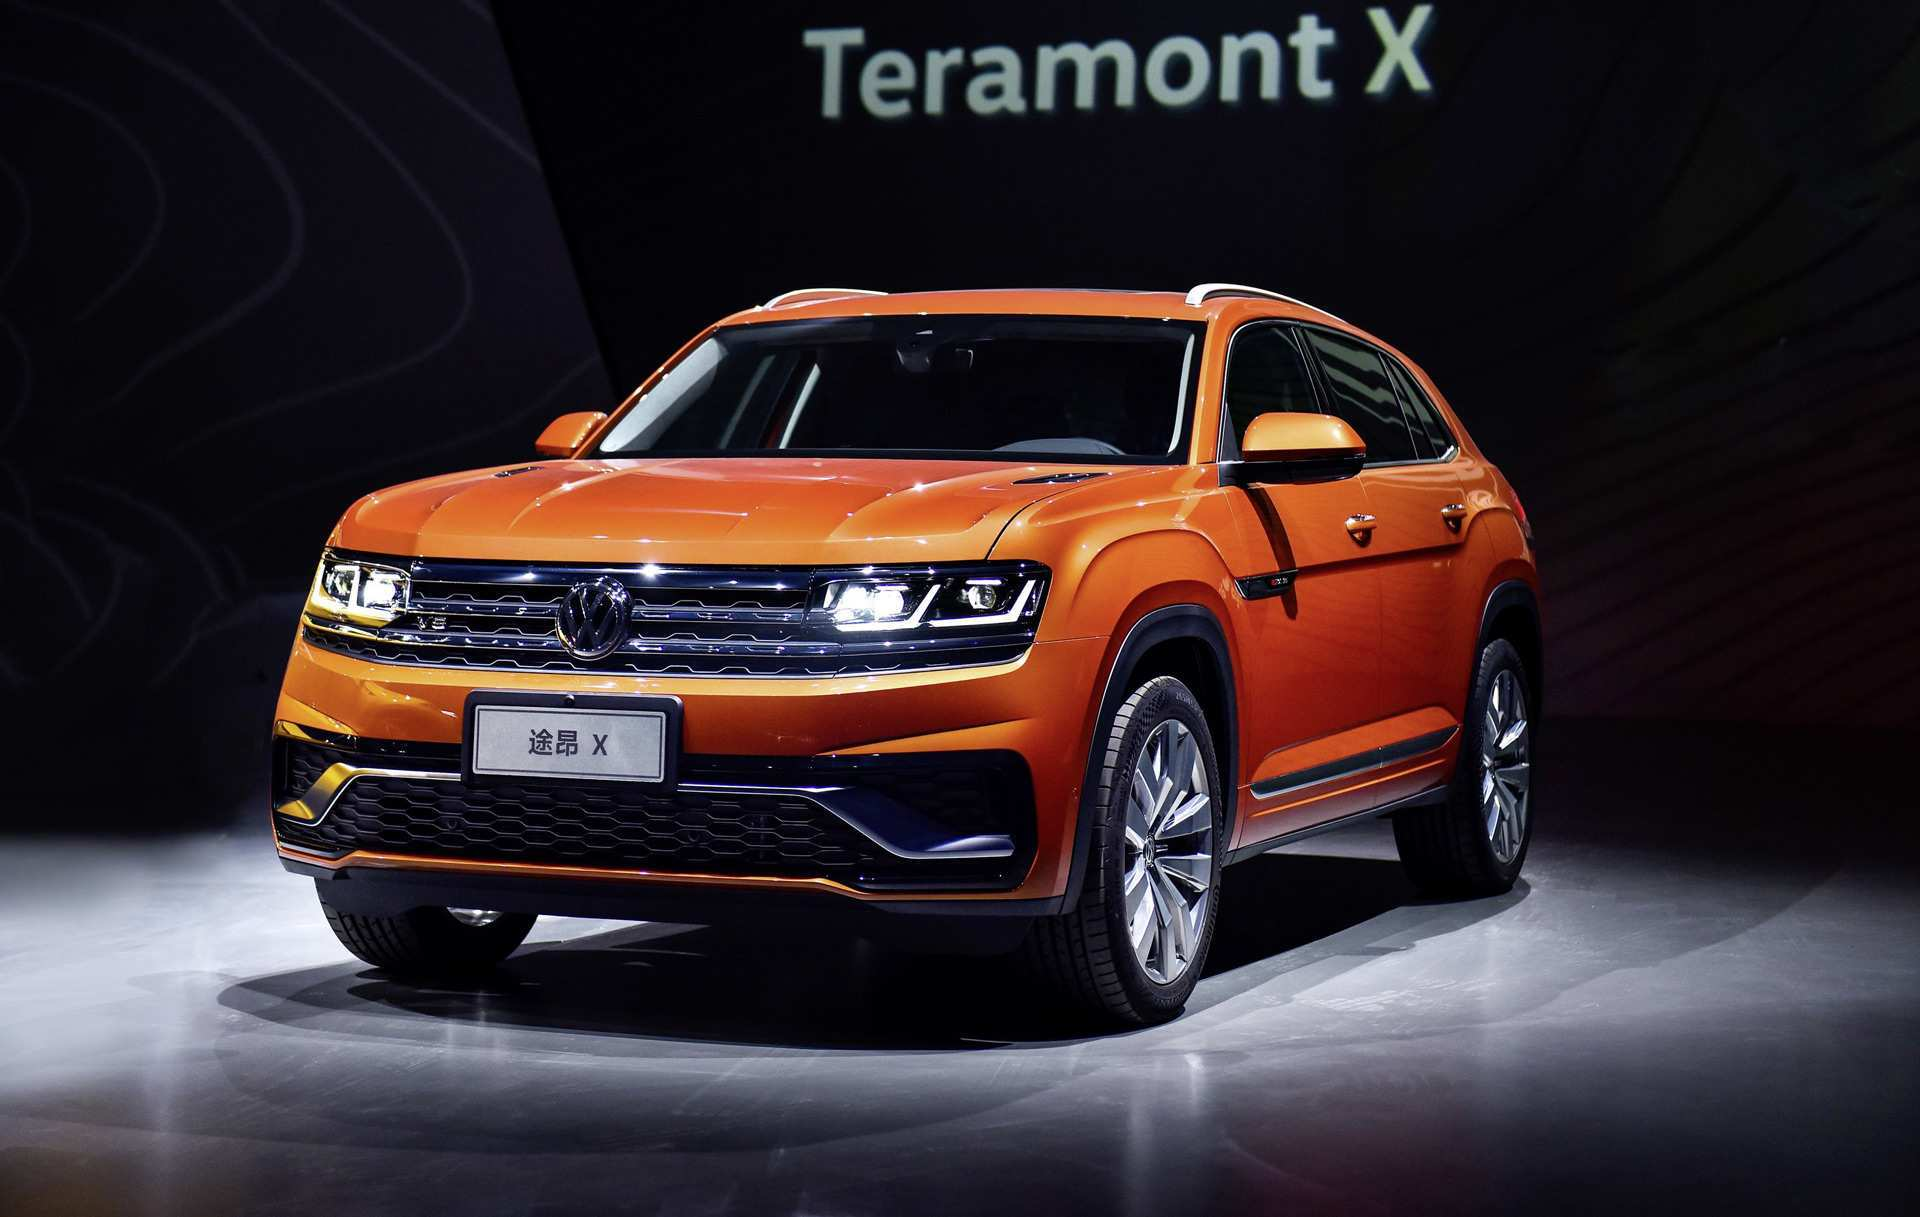 25 Concept of 2020 Volkswagen Teramont X First Drive for 2020 Volkswagen Teramont X